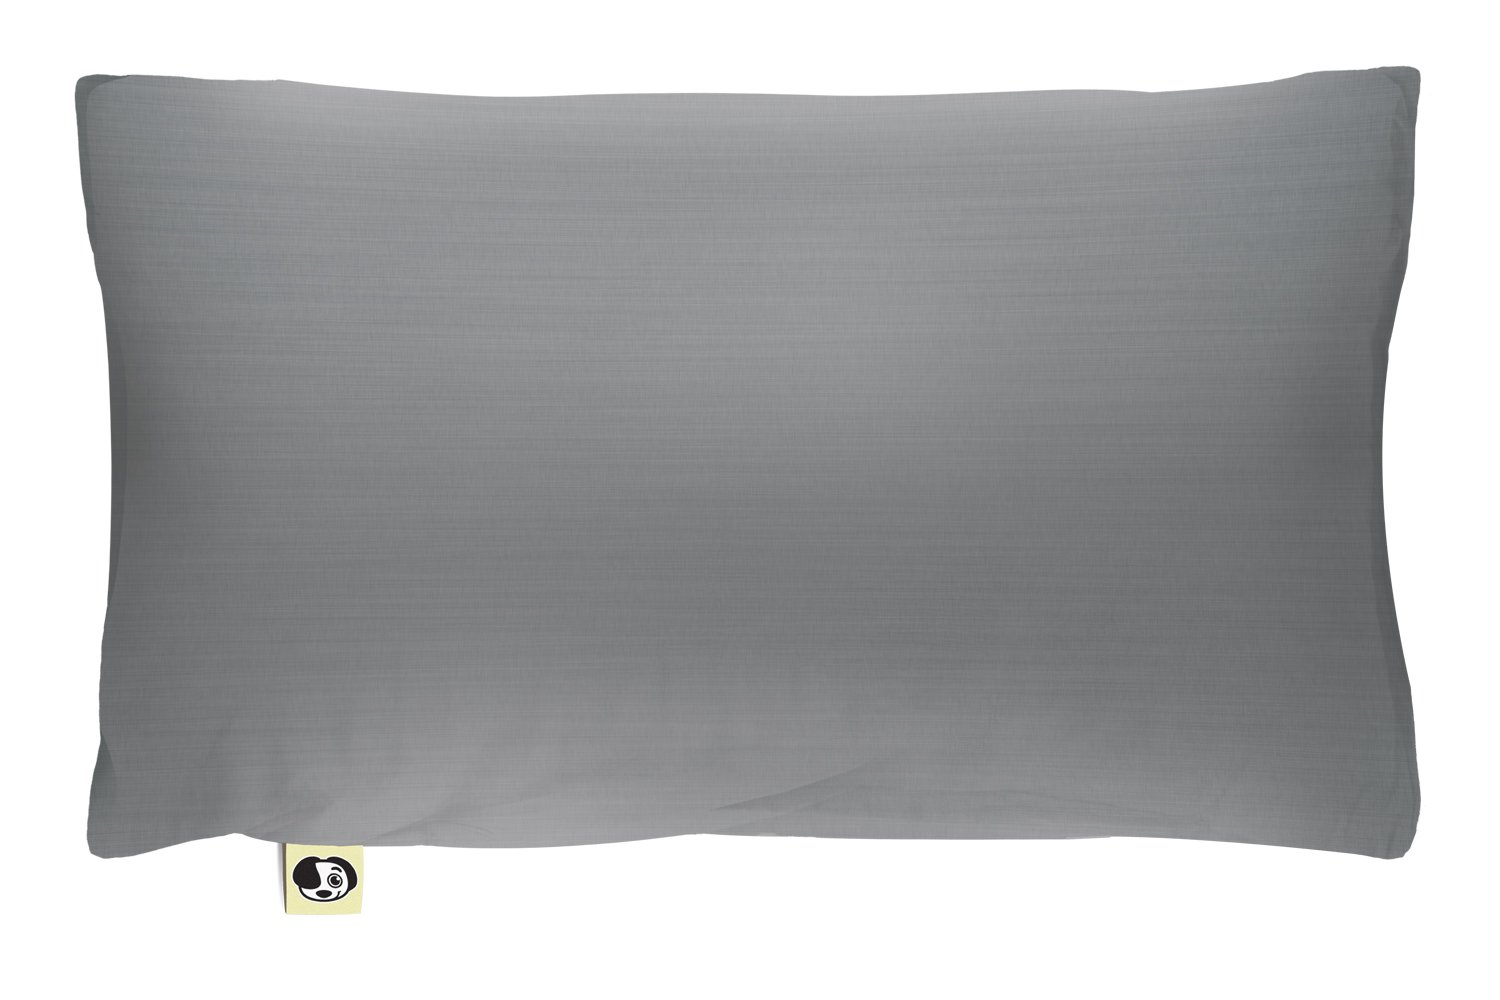 The Shrunks Natural Fibre - Water-proof Toddler Pillow and Cover, Grey by The Shrunks (Image #1)